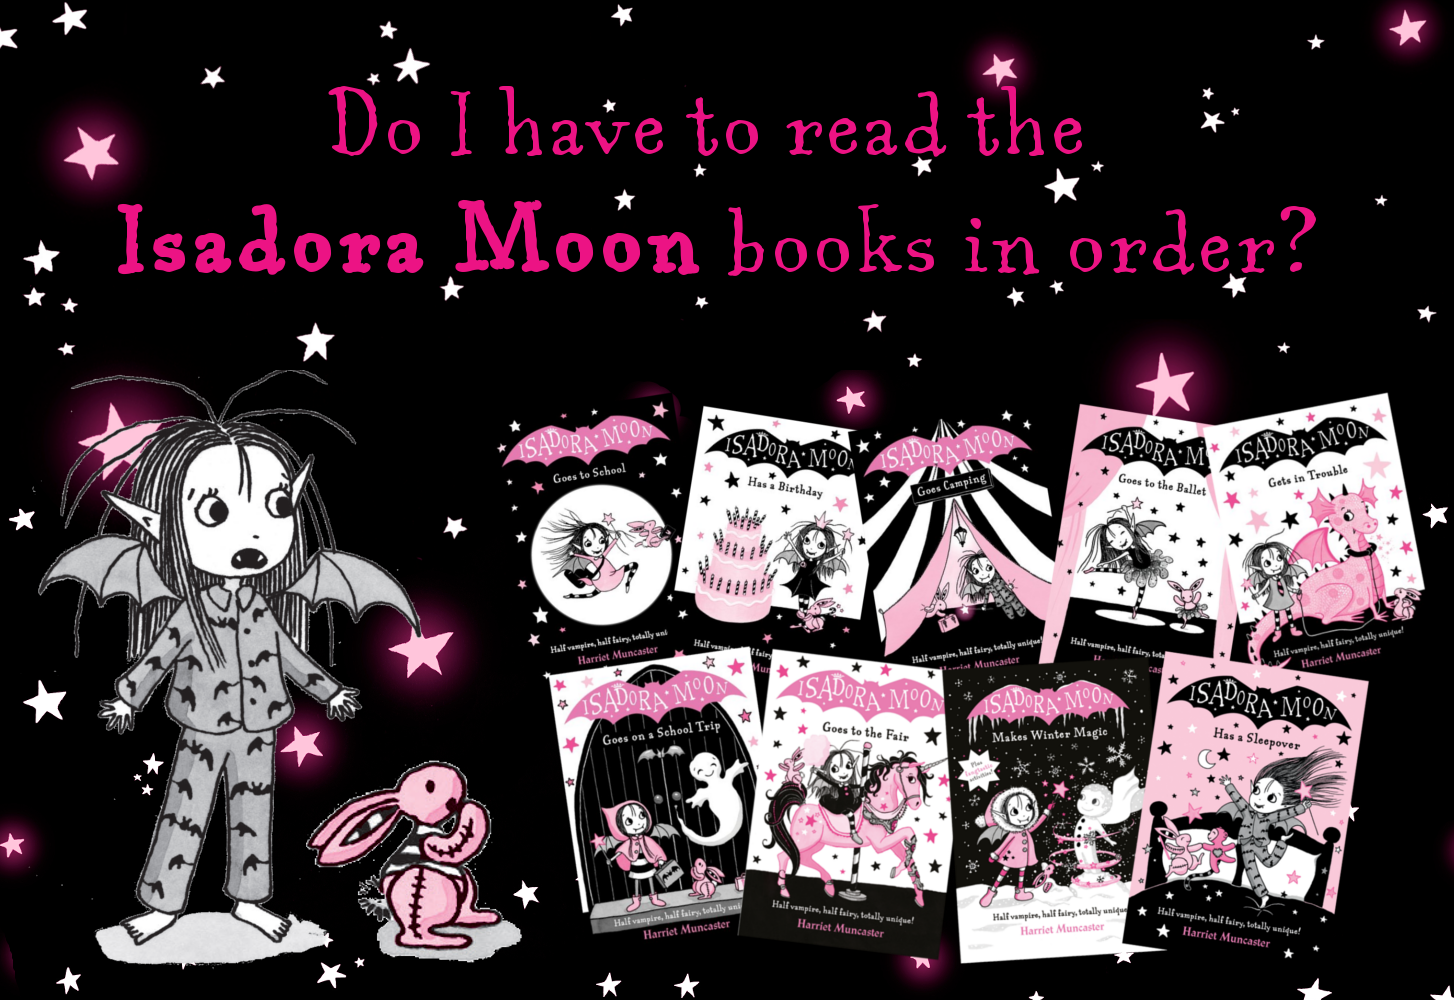 Do I have to read the Isadora Moon books in order?